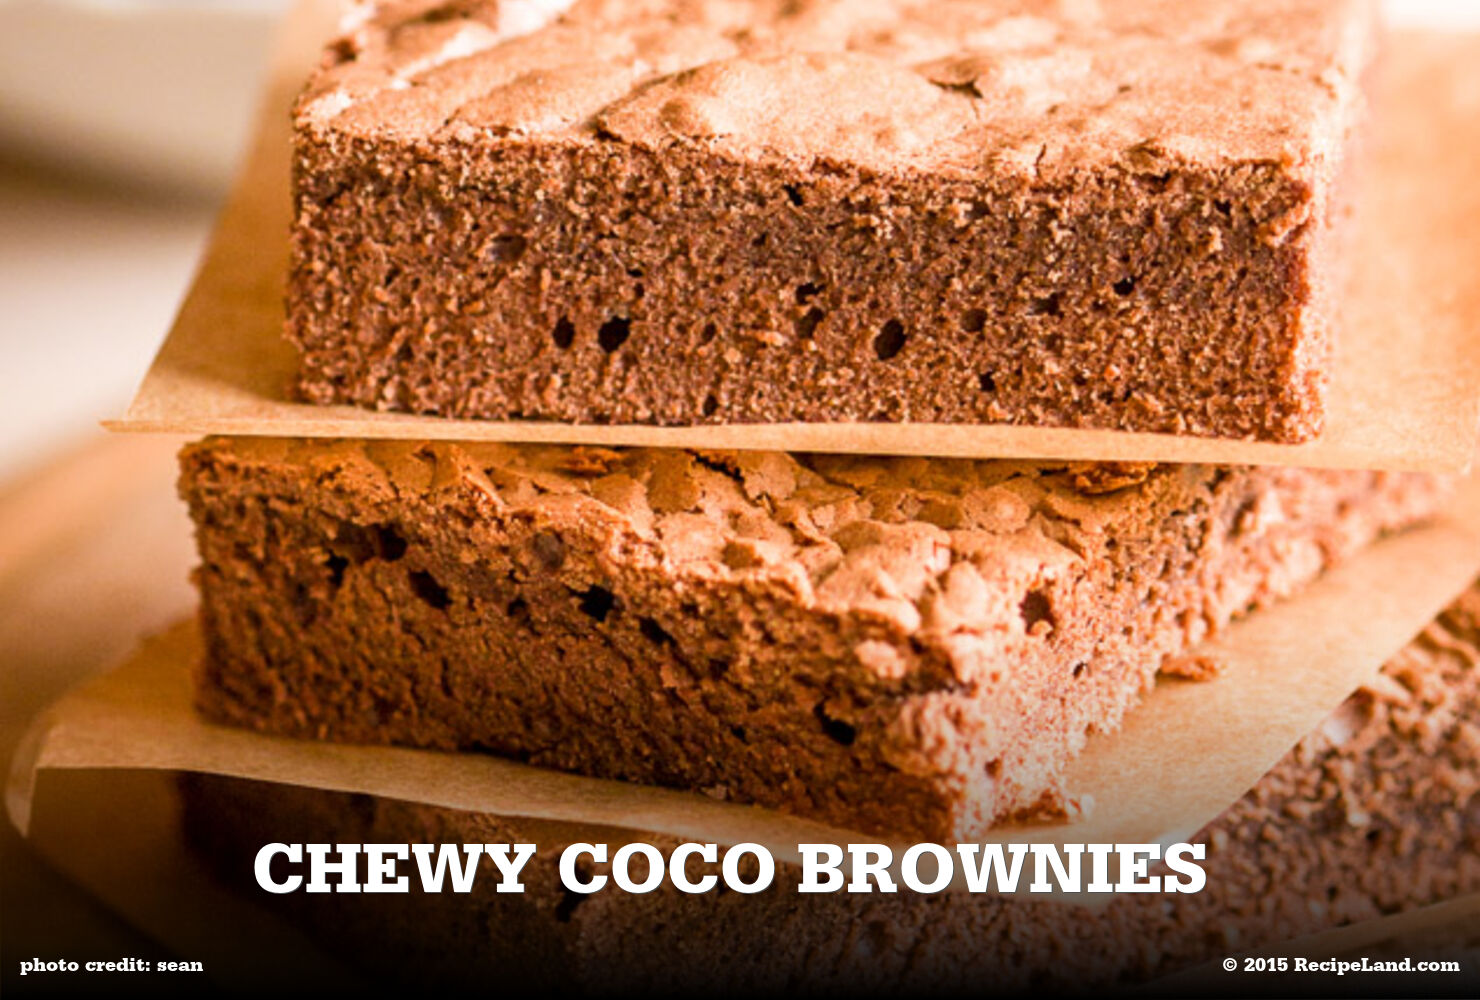 Chewy Coco brownies